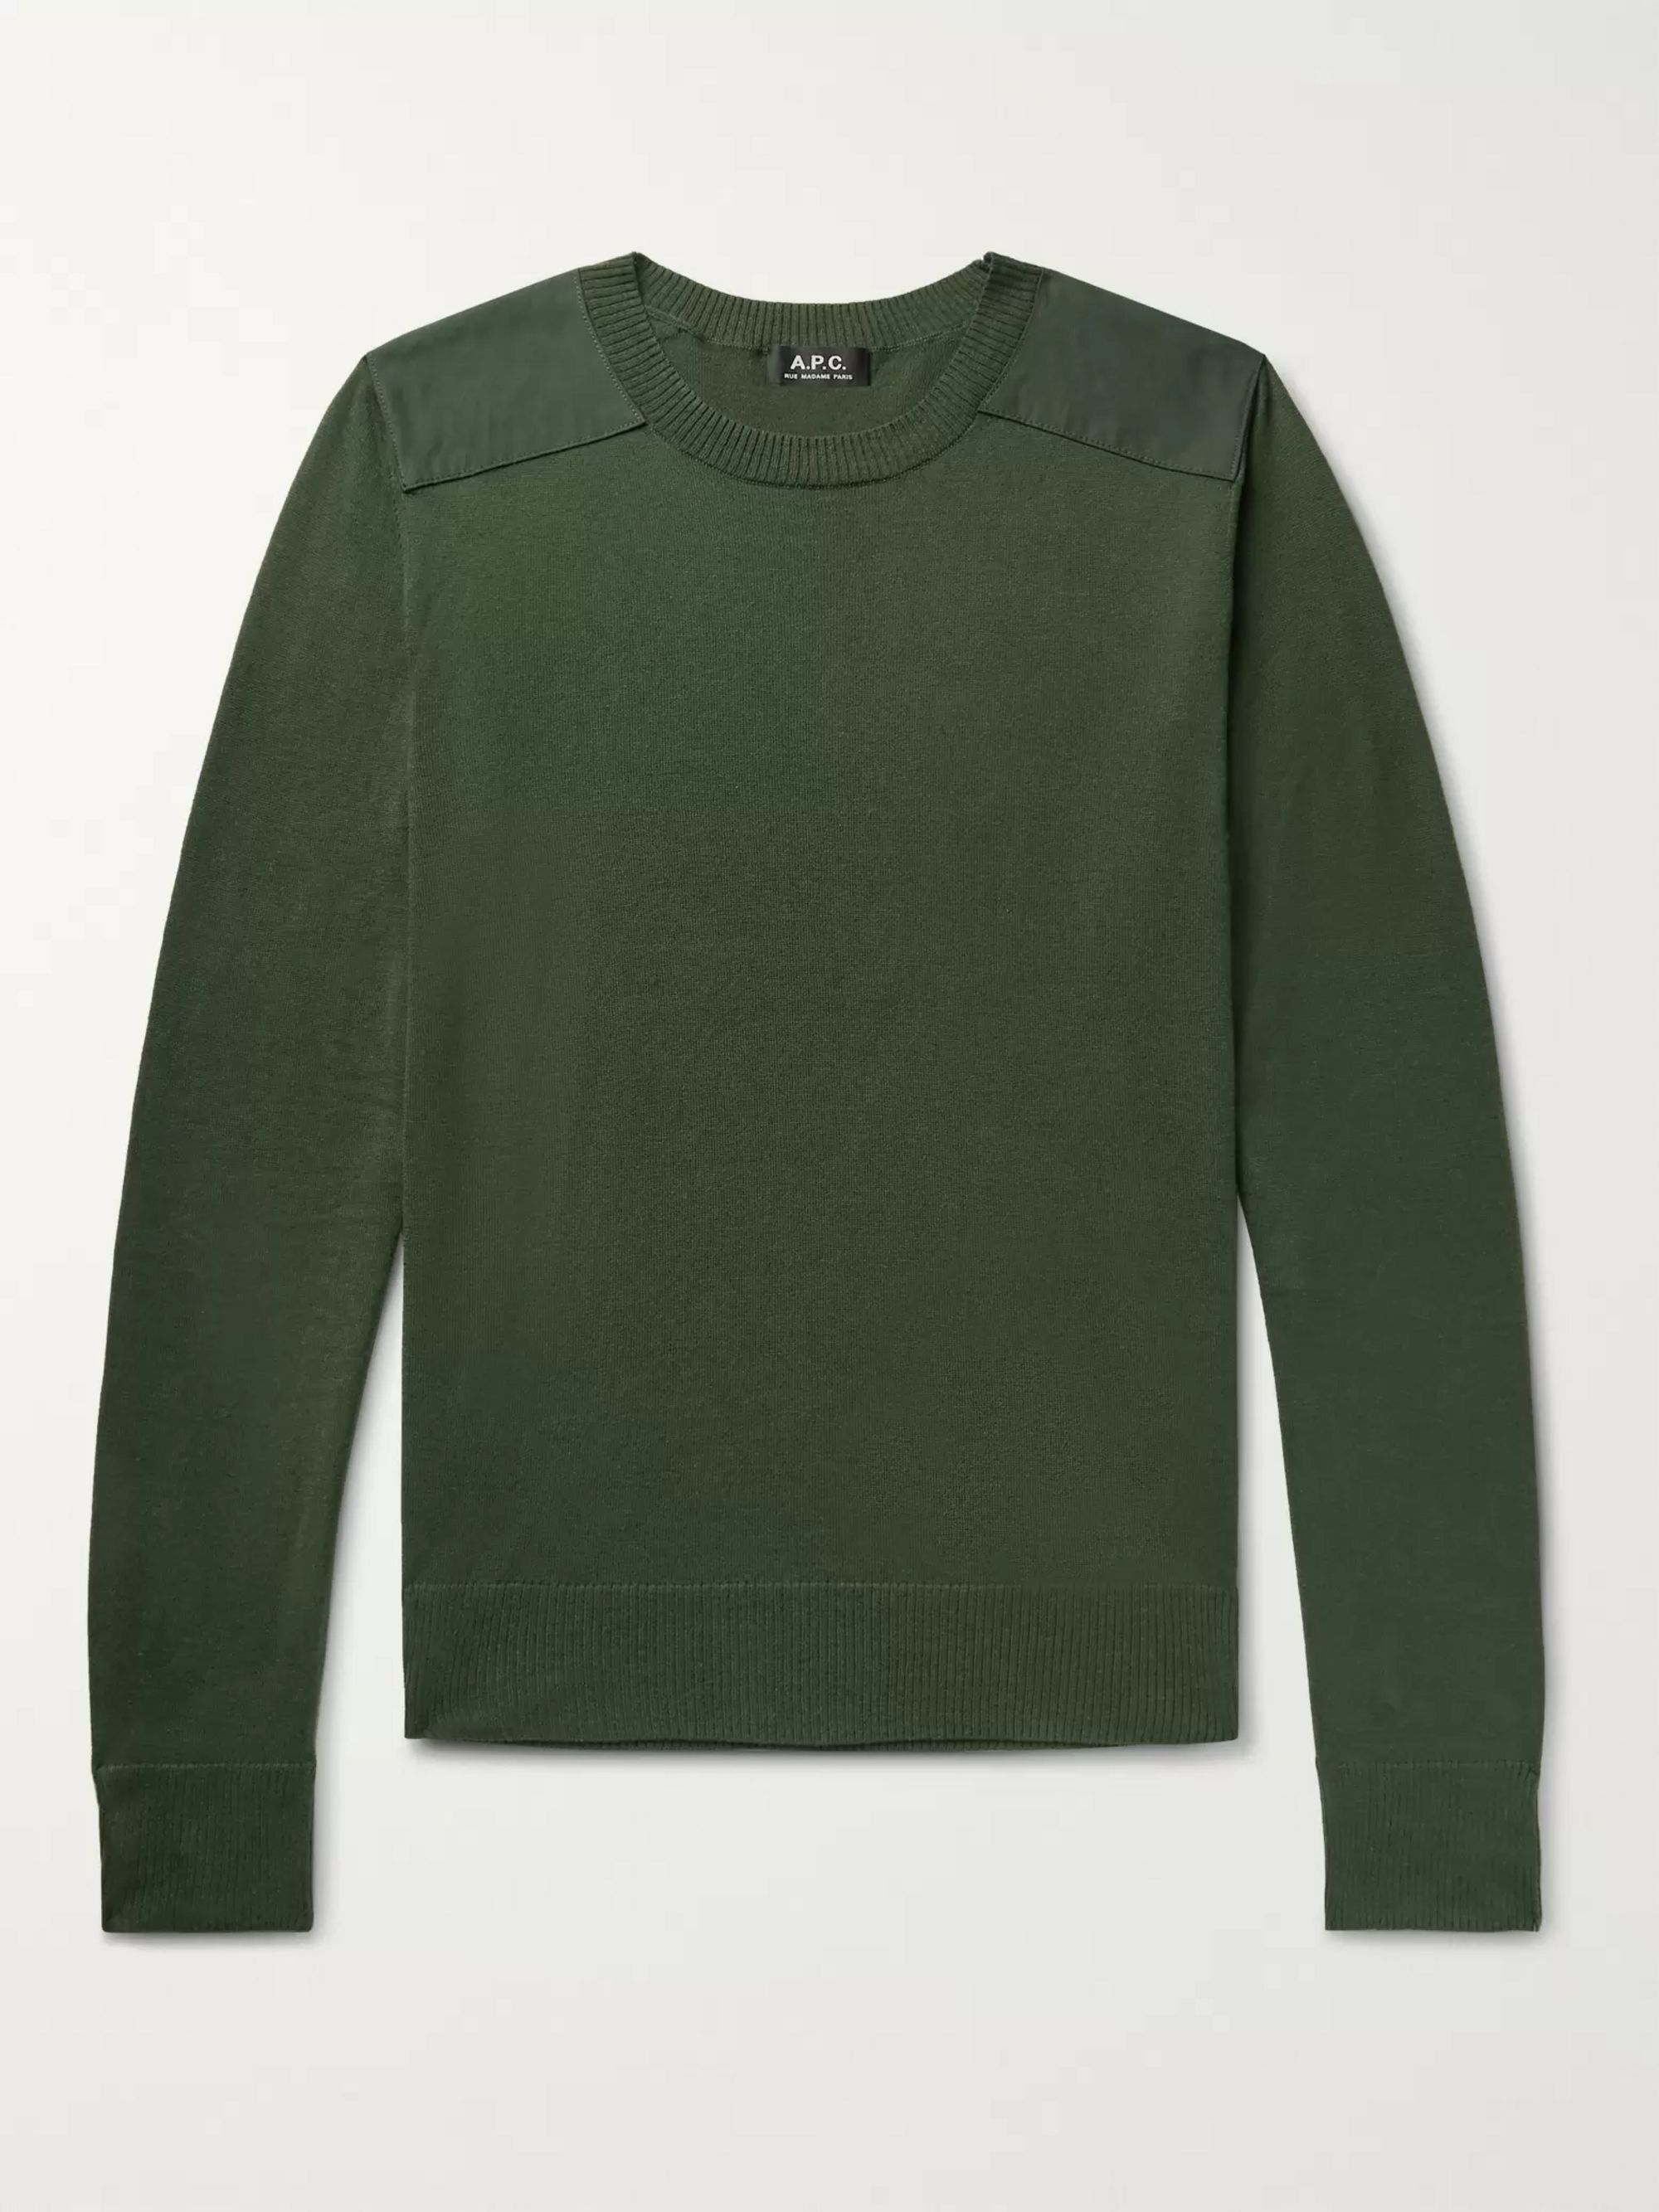 A.P.C. Ernest Canvas-Trimmed Knitted Sweater